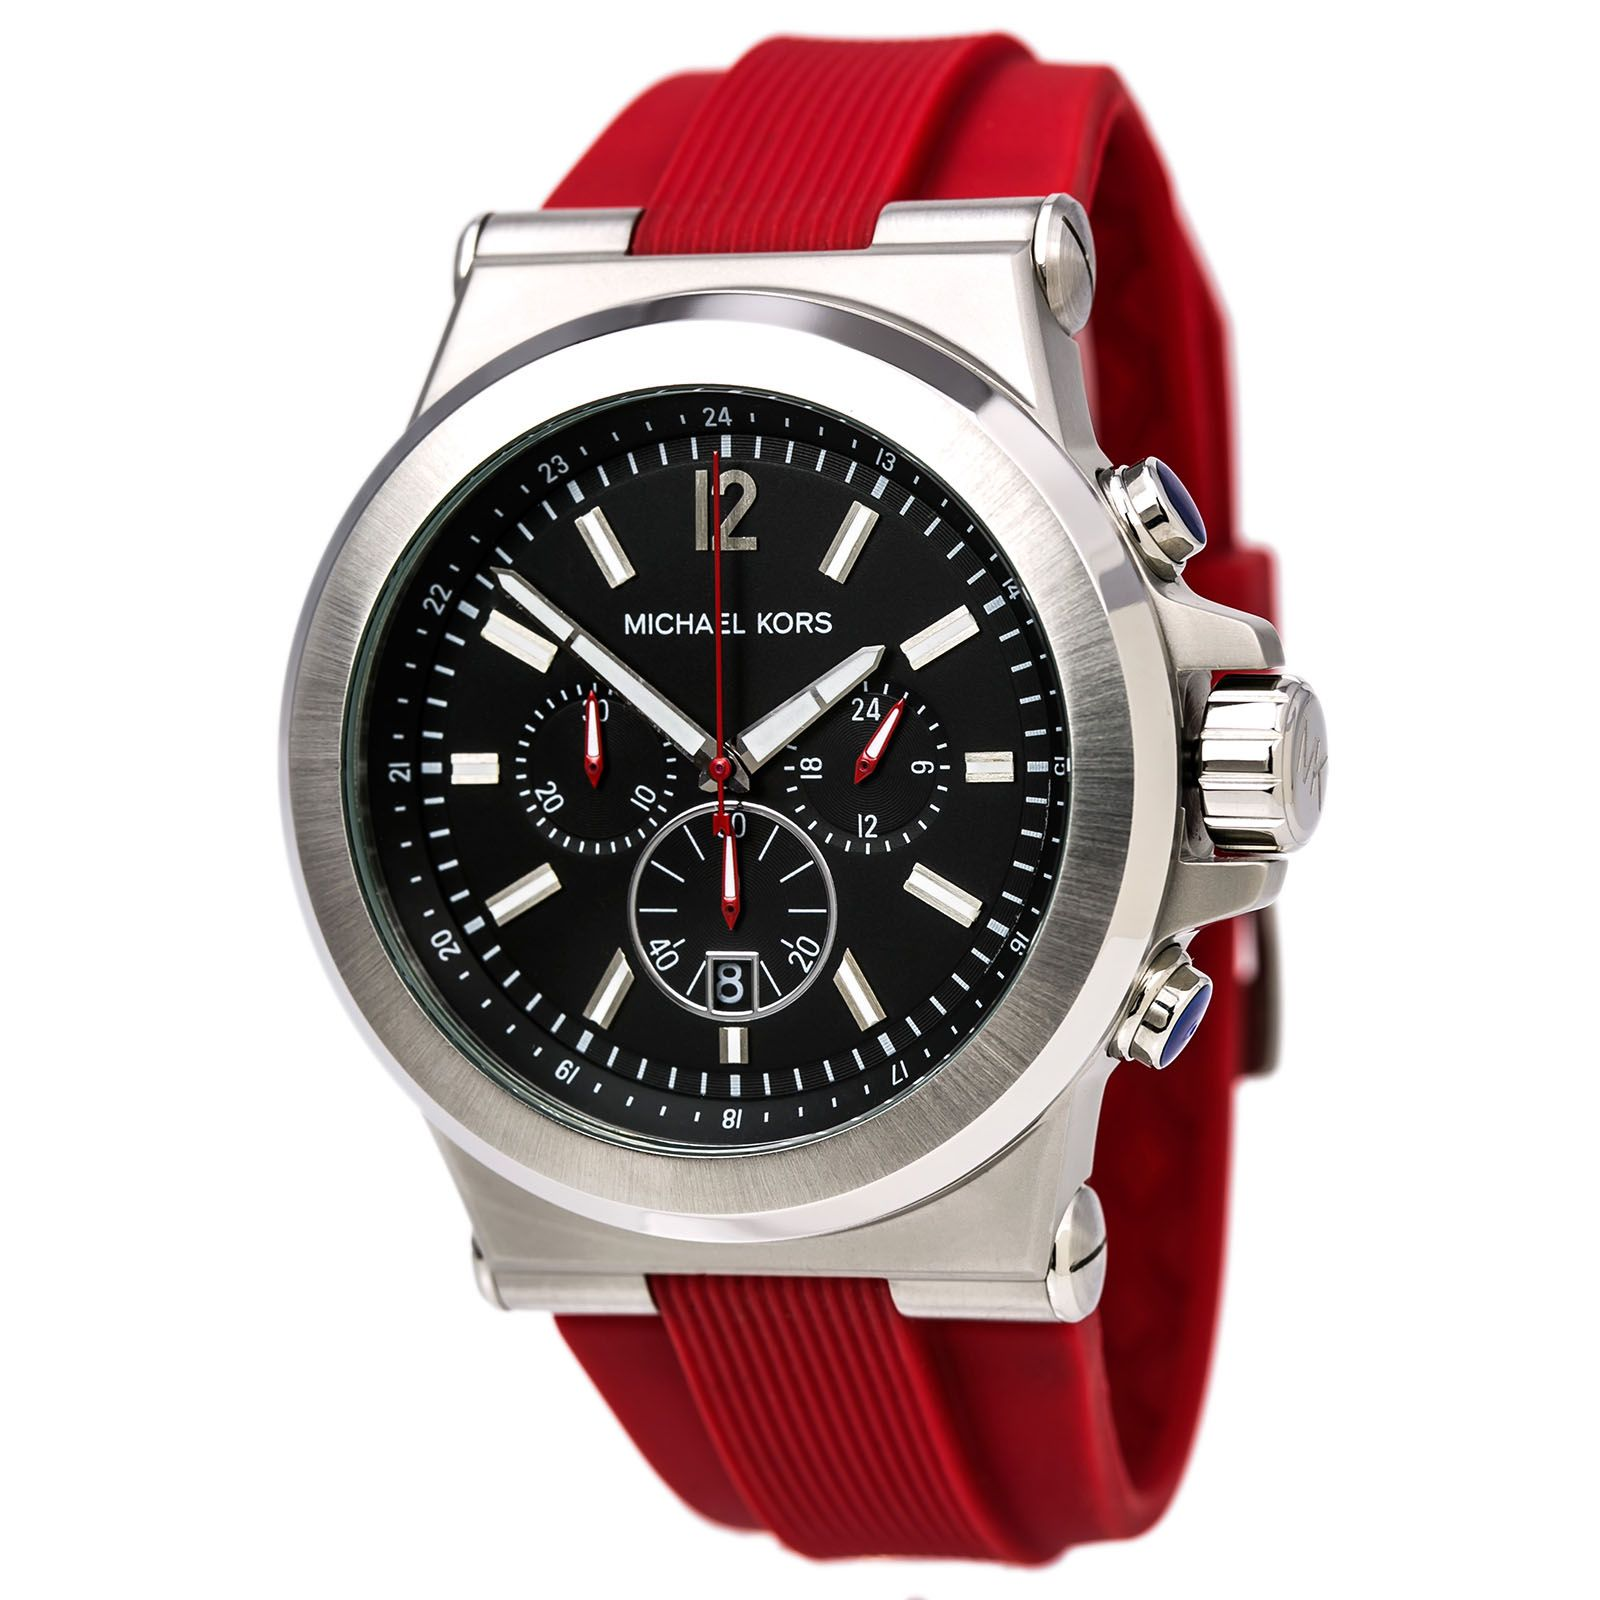 Michael Kors MK8169 Men\u0027s Black Dial Red Silicone Strap Chronograph Watch,